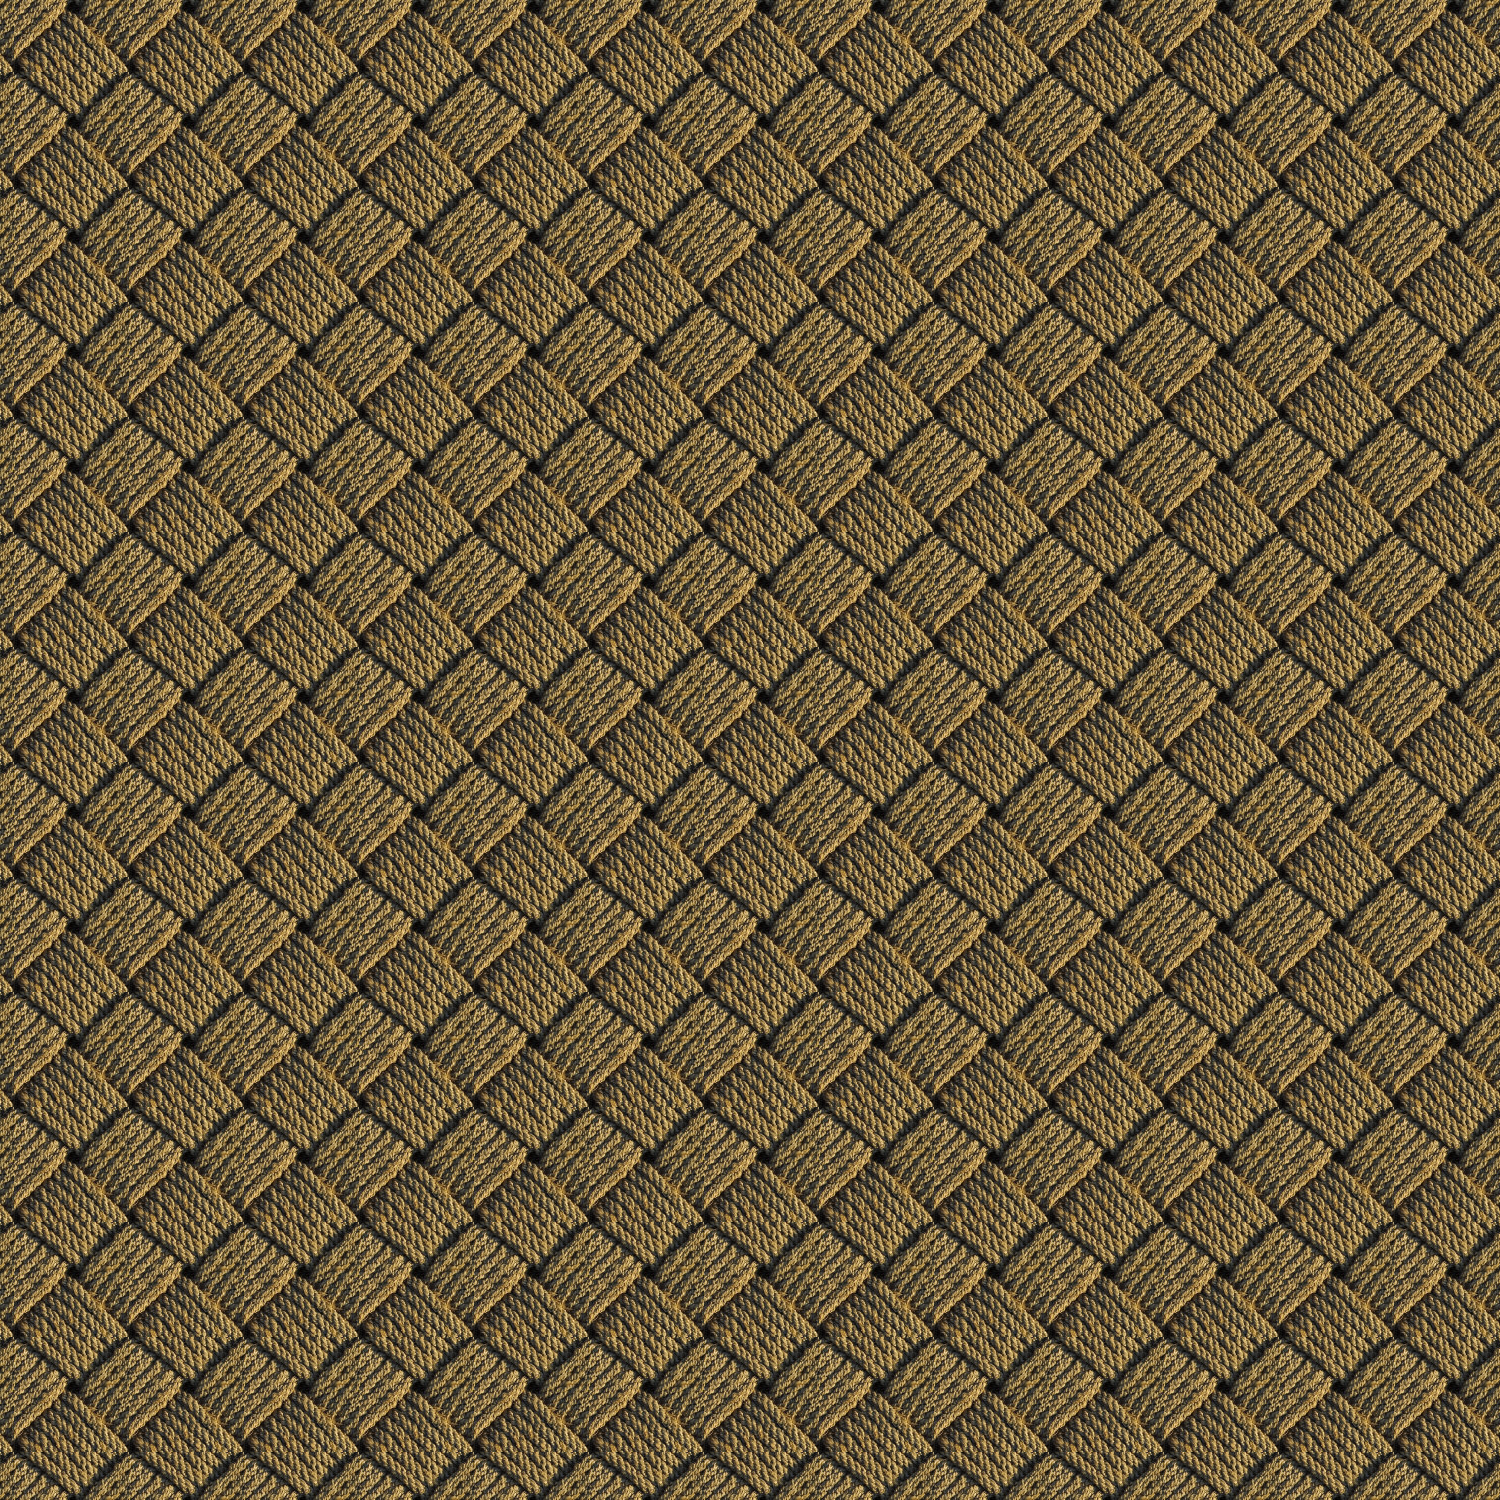 Rope Texture Pattern By